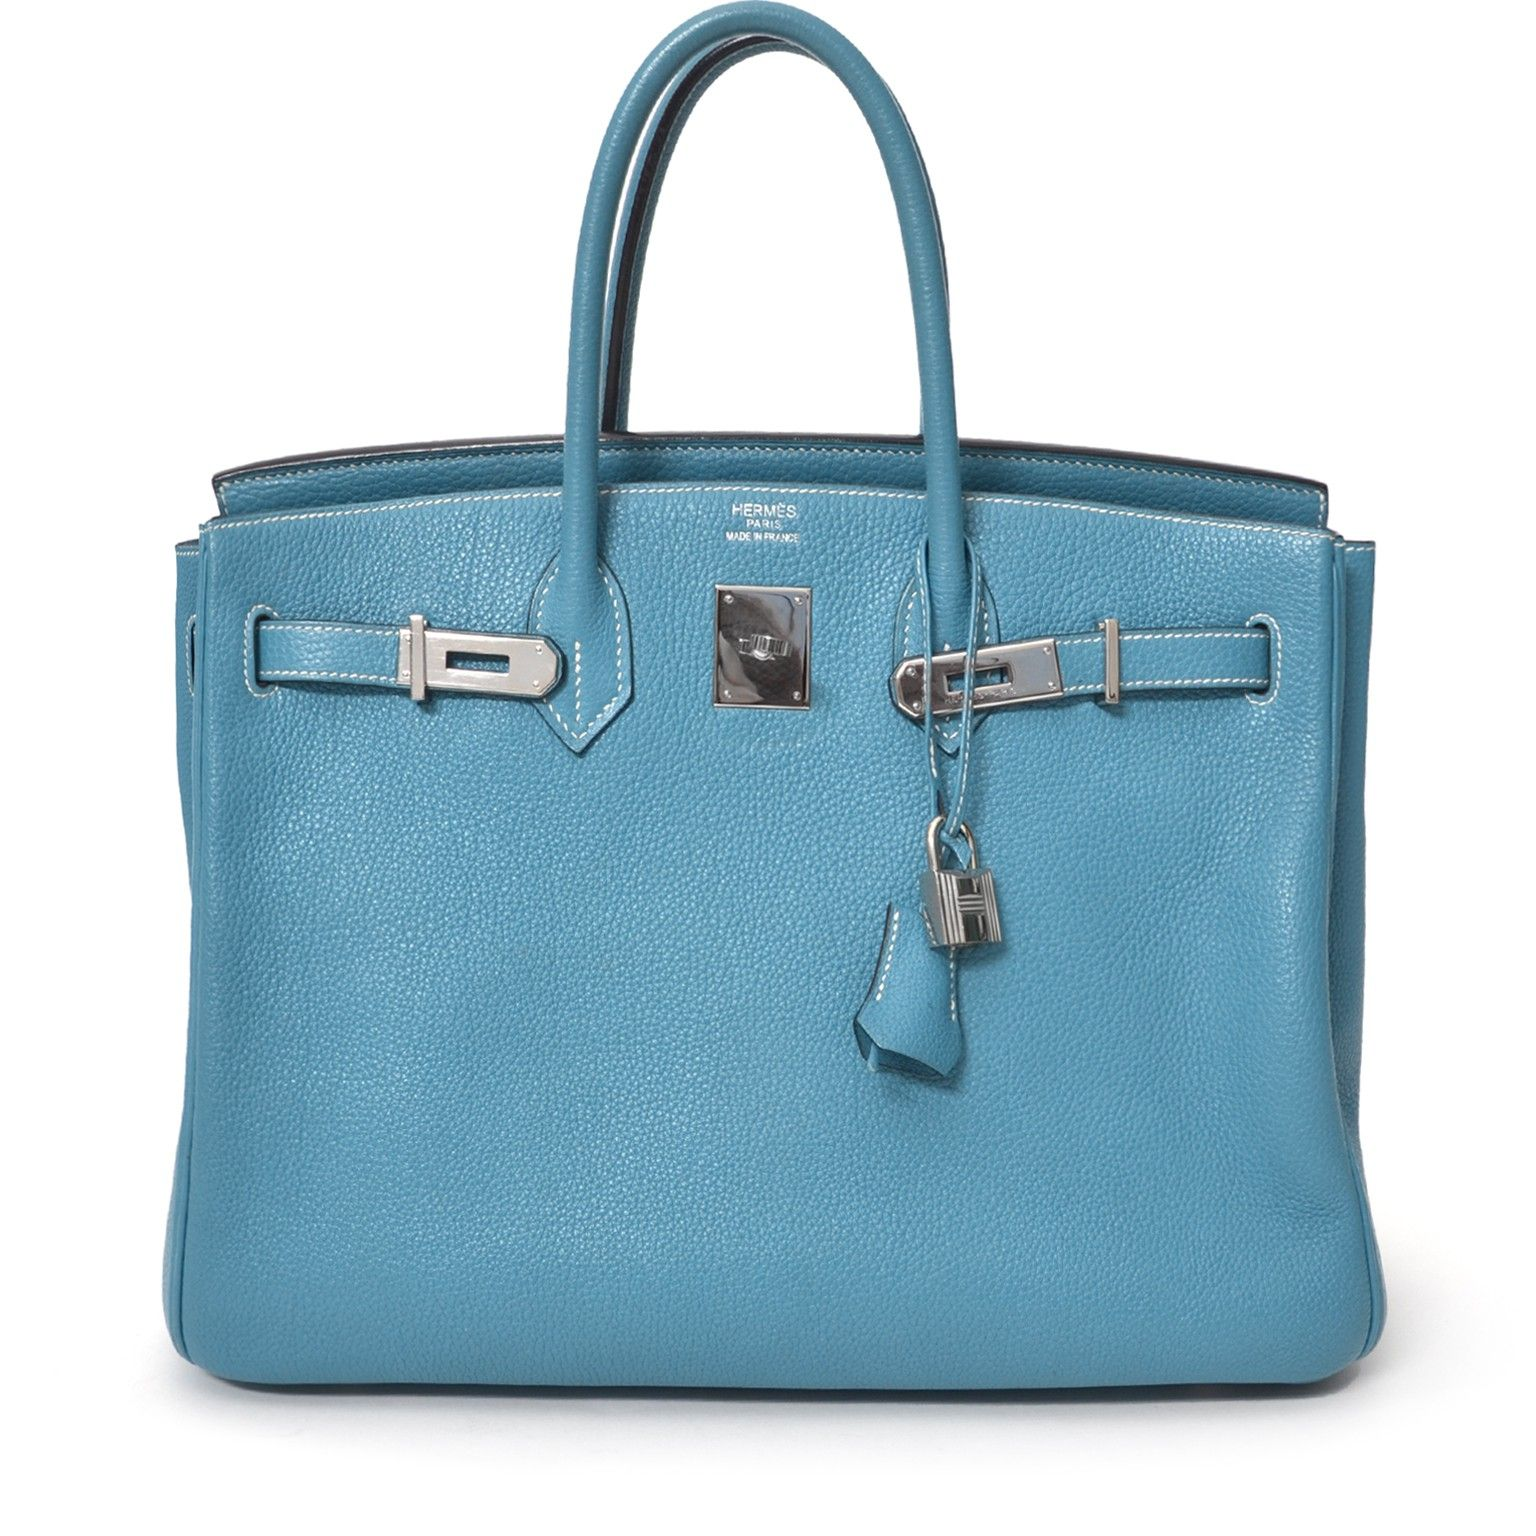 This is an iconic Hermès Birkin bag in grained Togo calfskin. Paladium  hardware throughout. cb974b5cf6